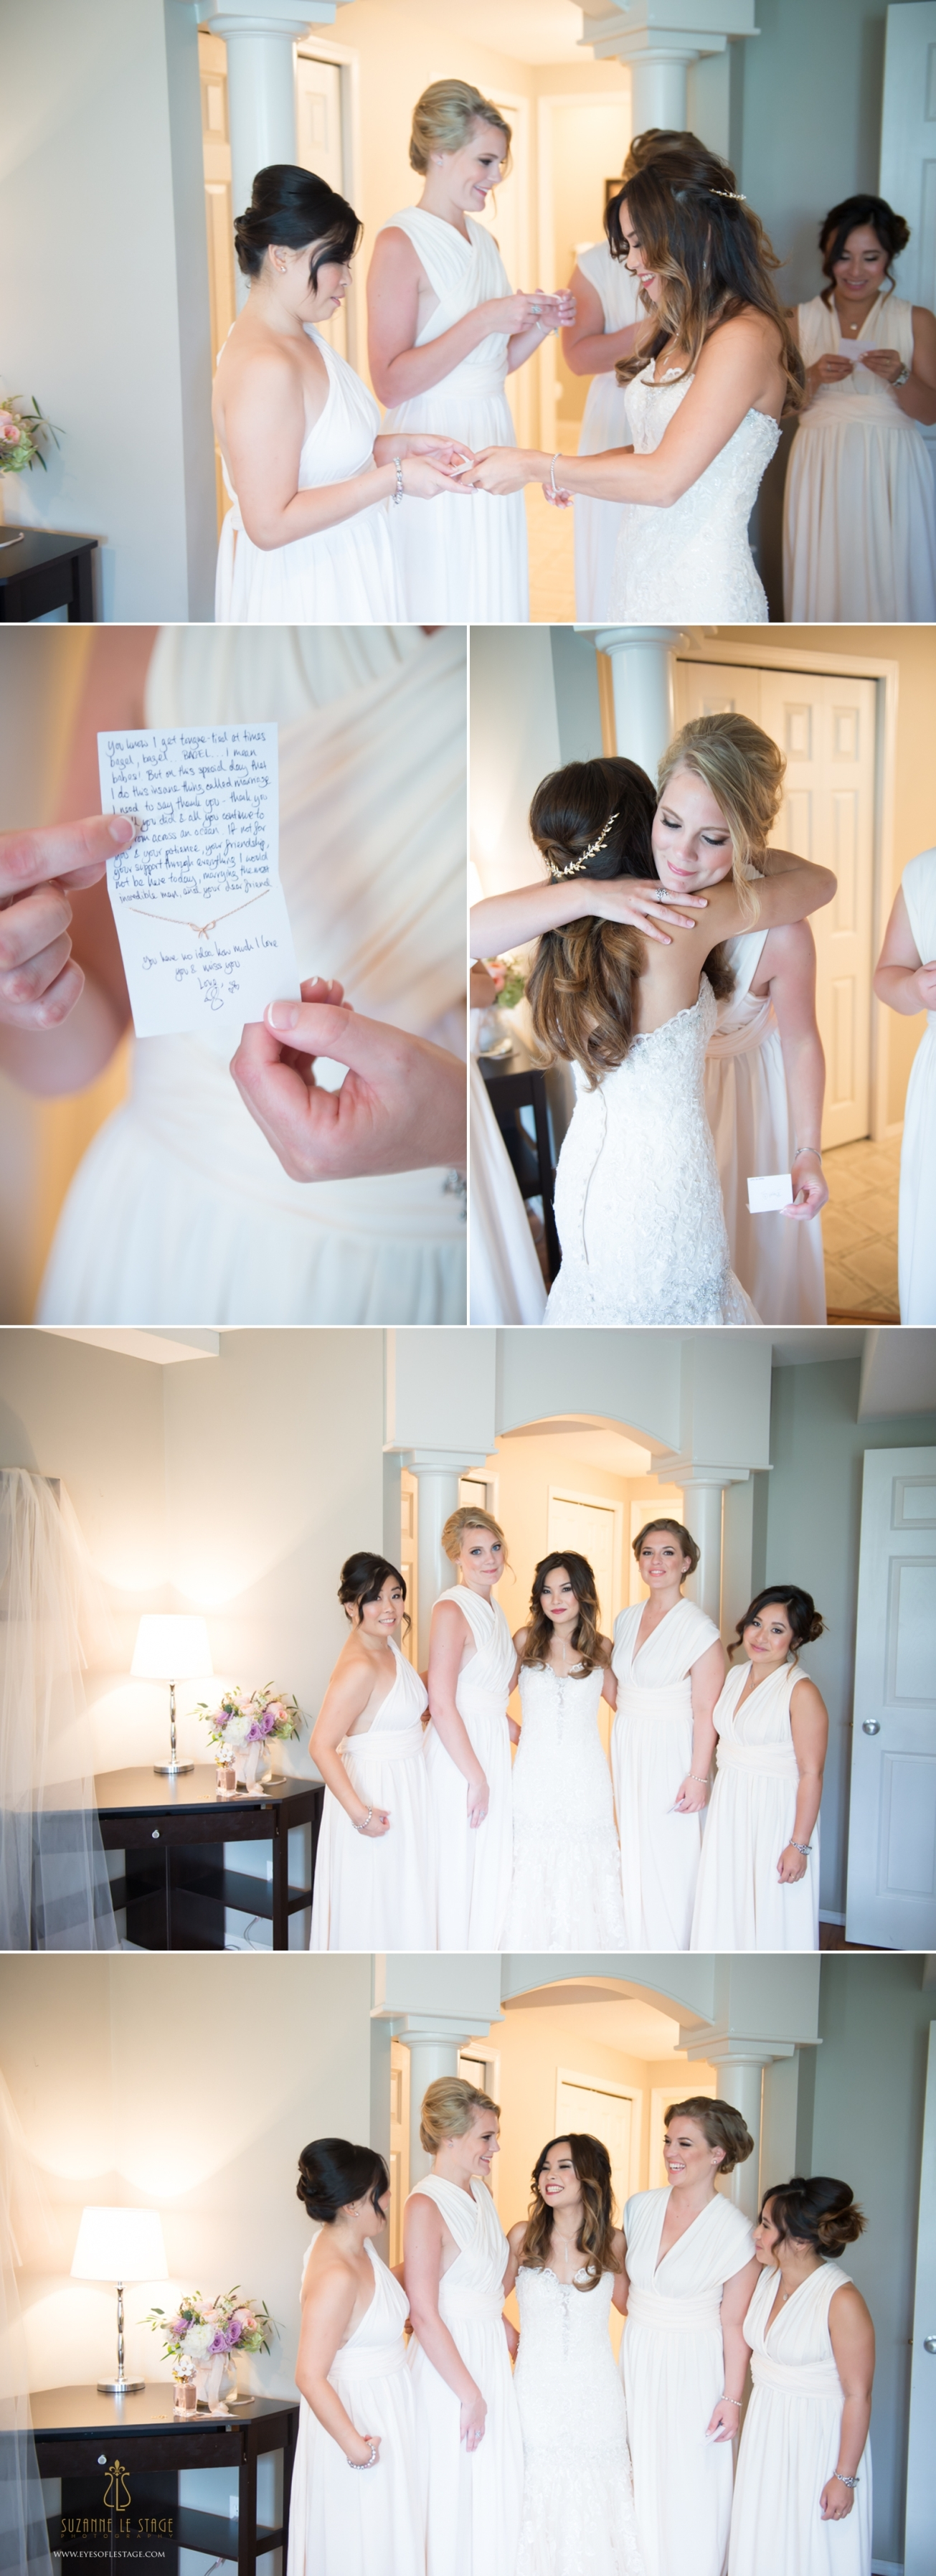 Cedar Creek Winery Wedding - Kelowna Okanagan Photography - Suzanne Le Stage 4